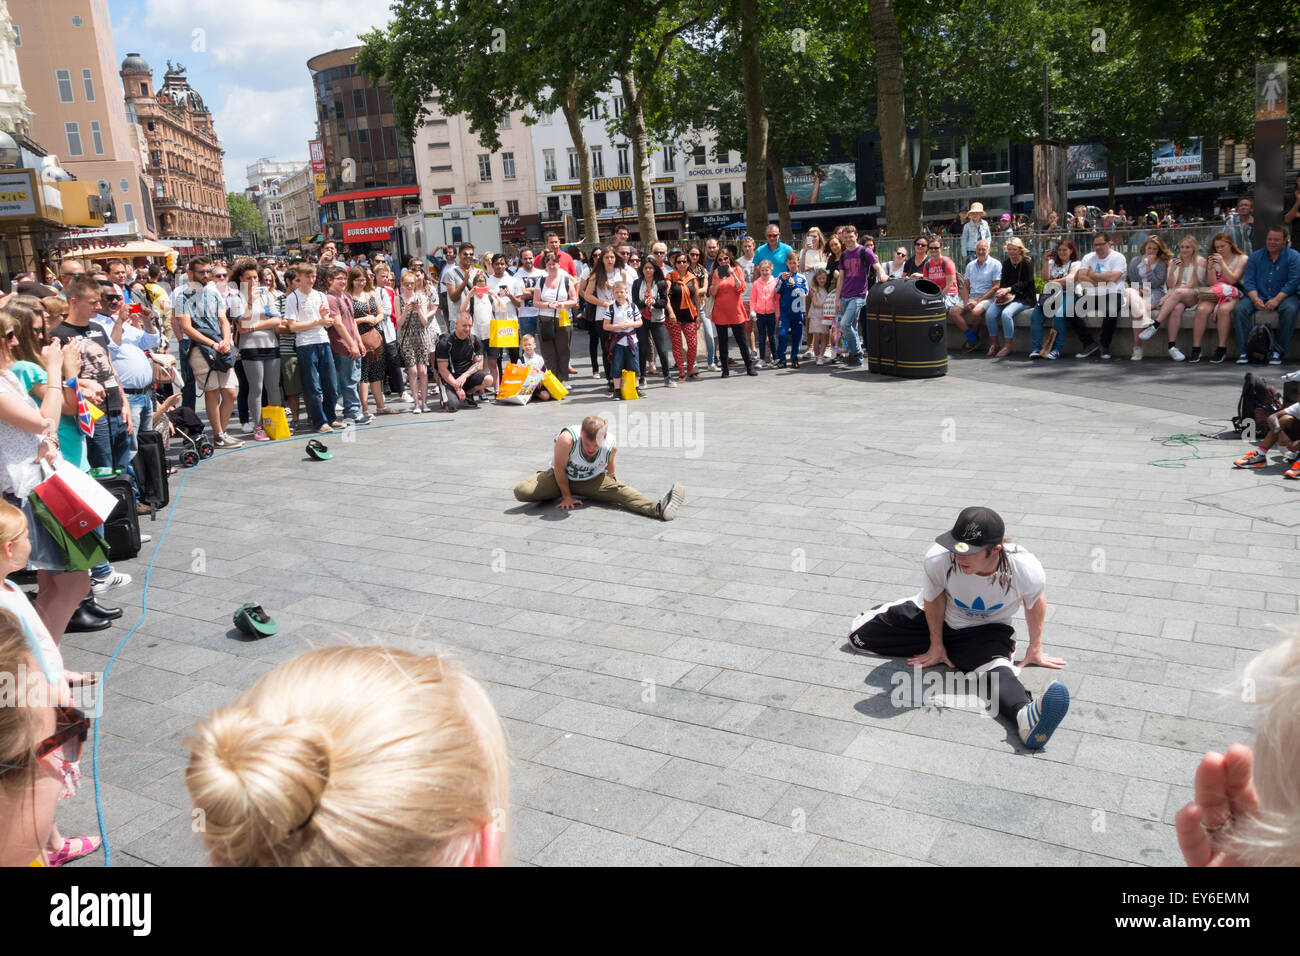 Street entertainers dancing to an audience in Leicester Square, London England UK Stock Photo